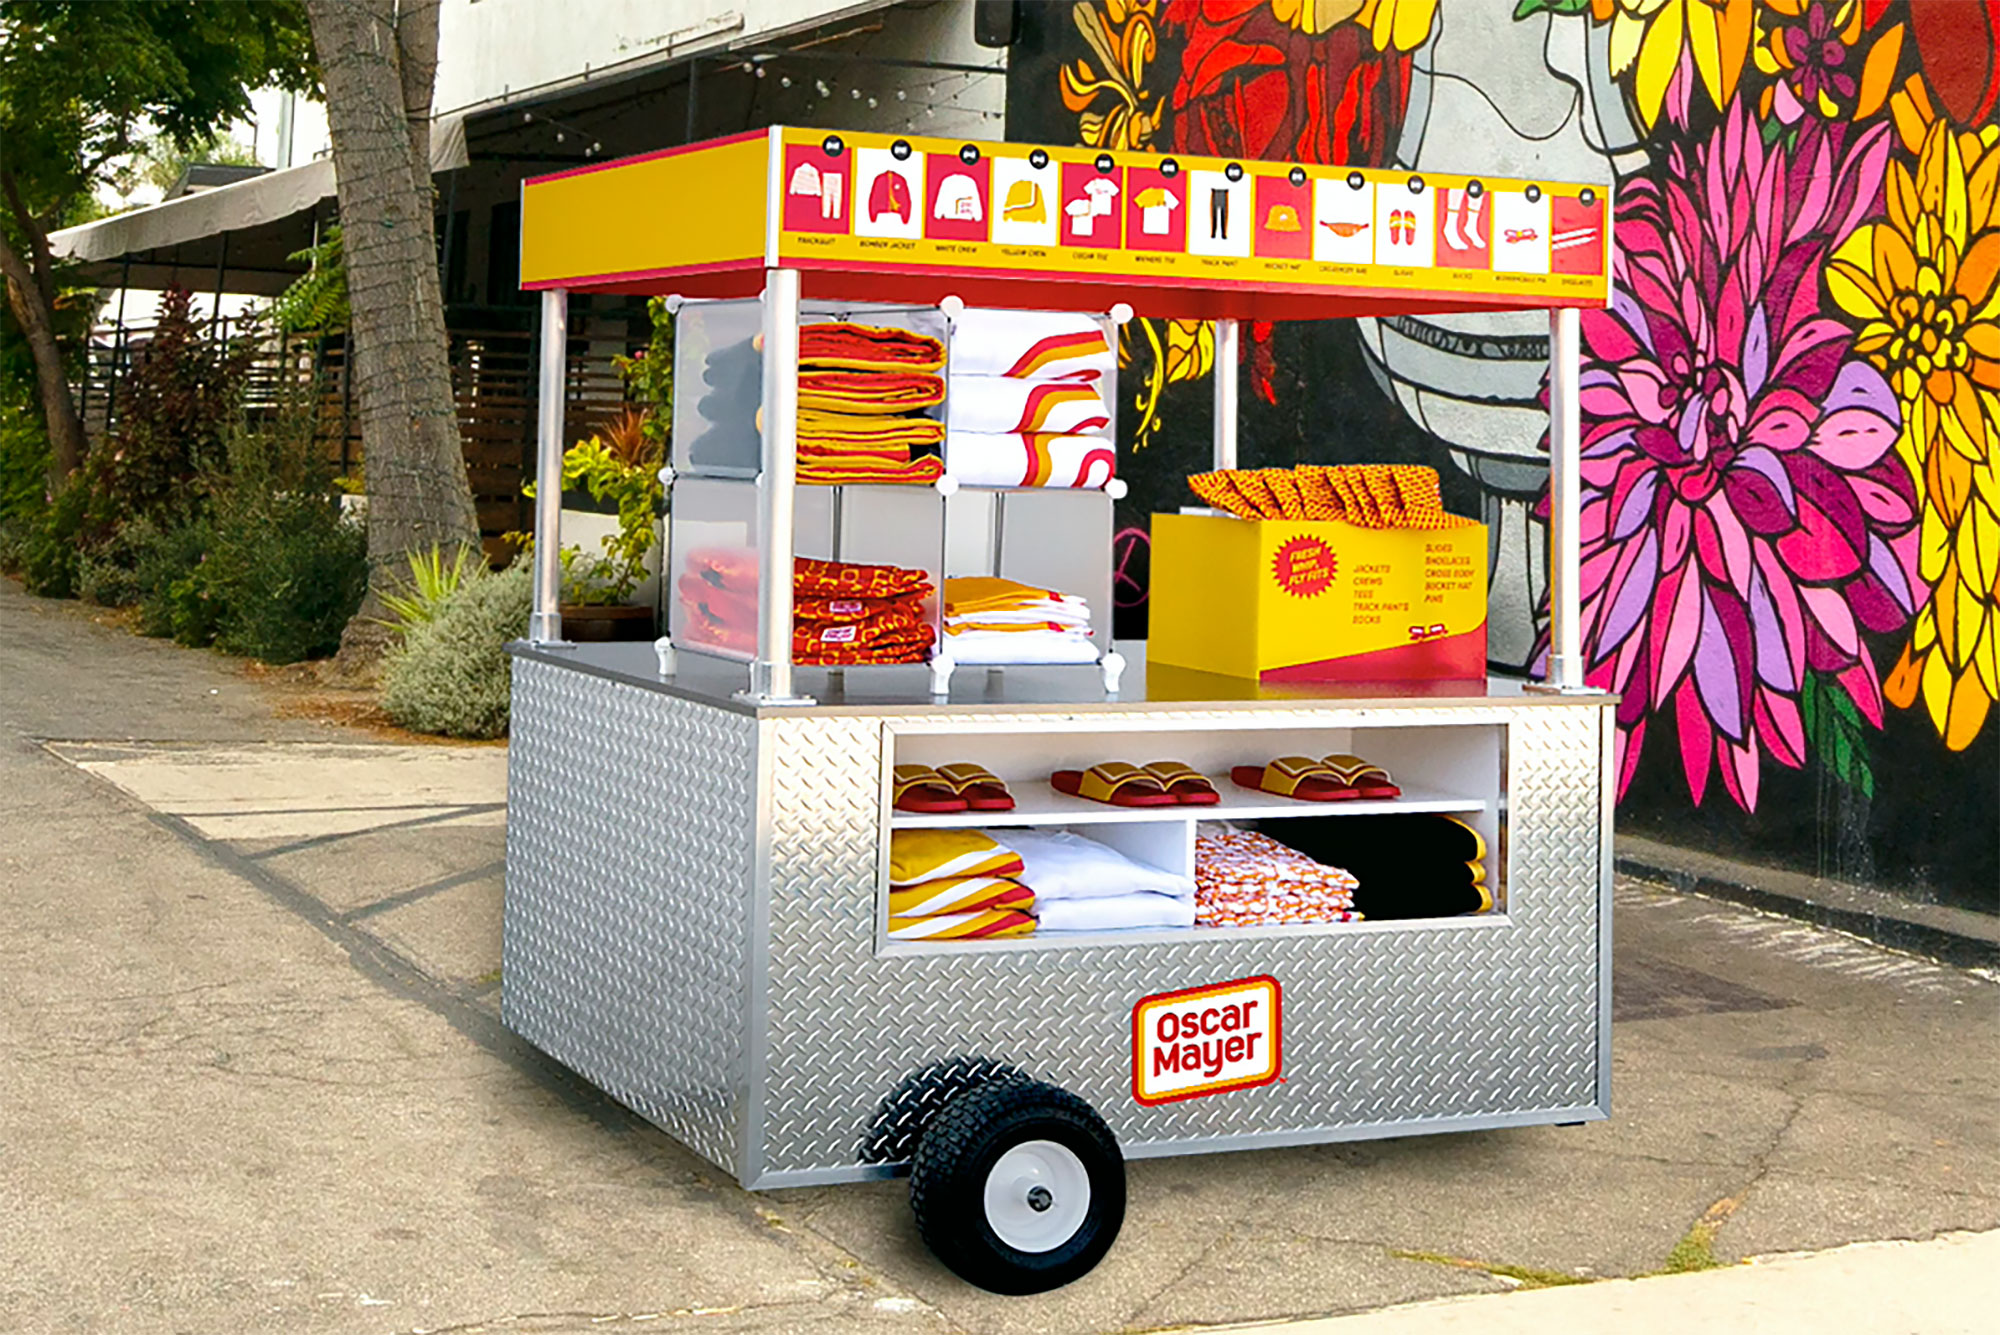 Oscar Mayer Street Meat capsule collection cart